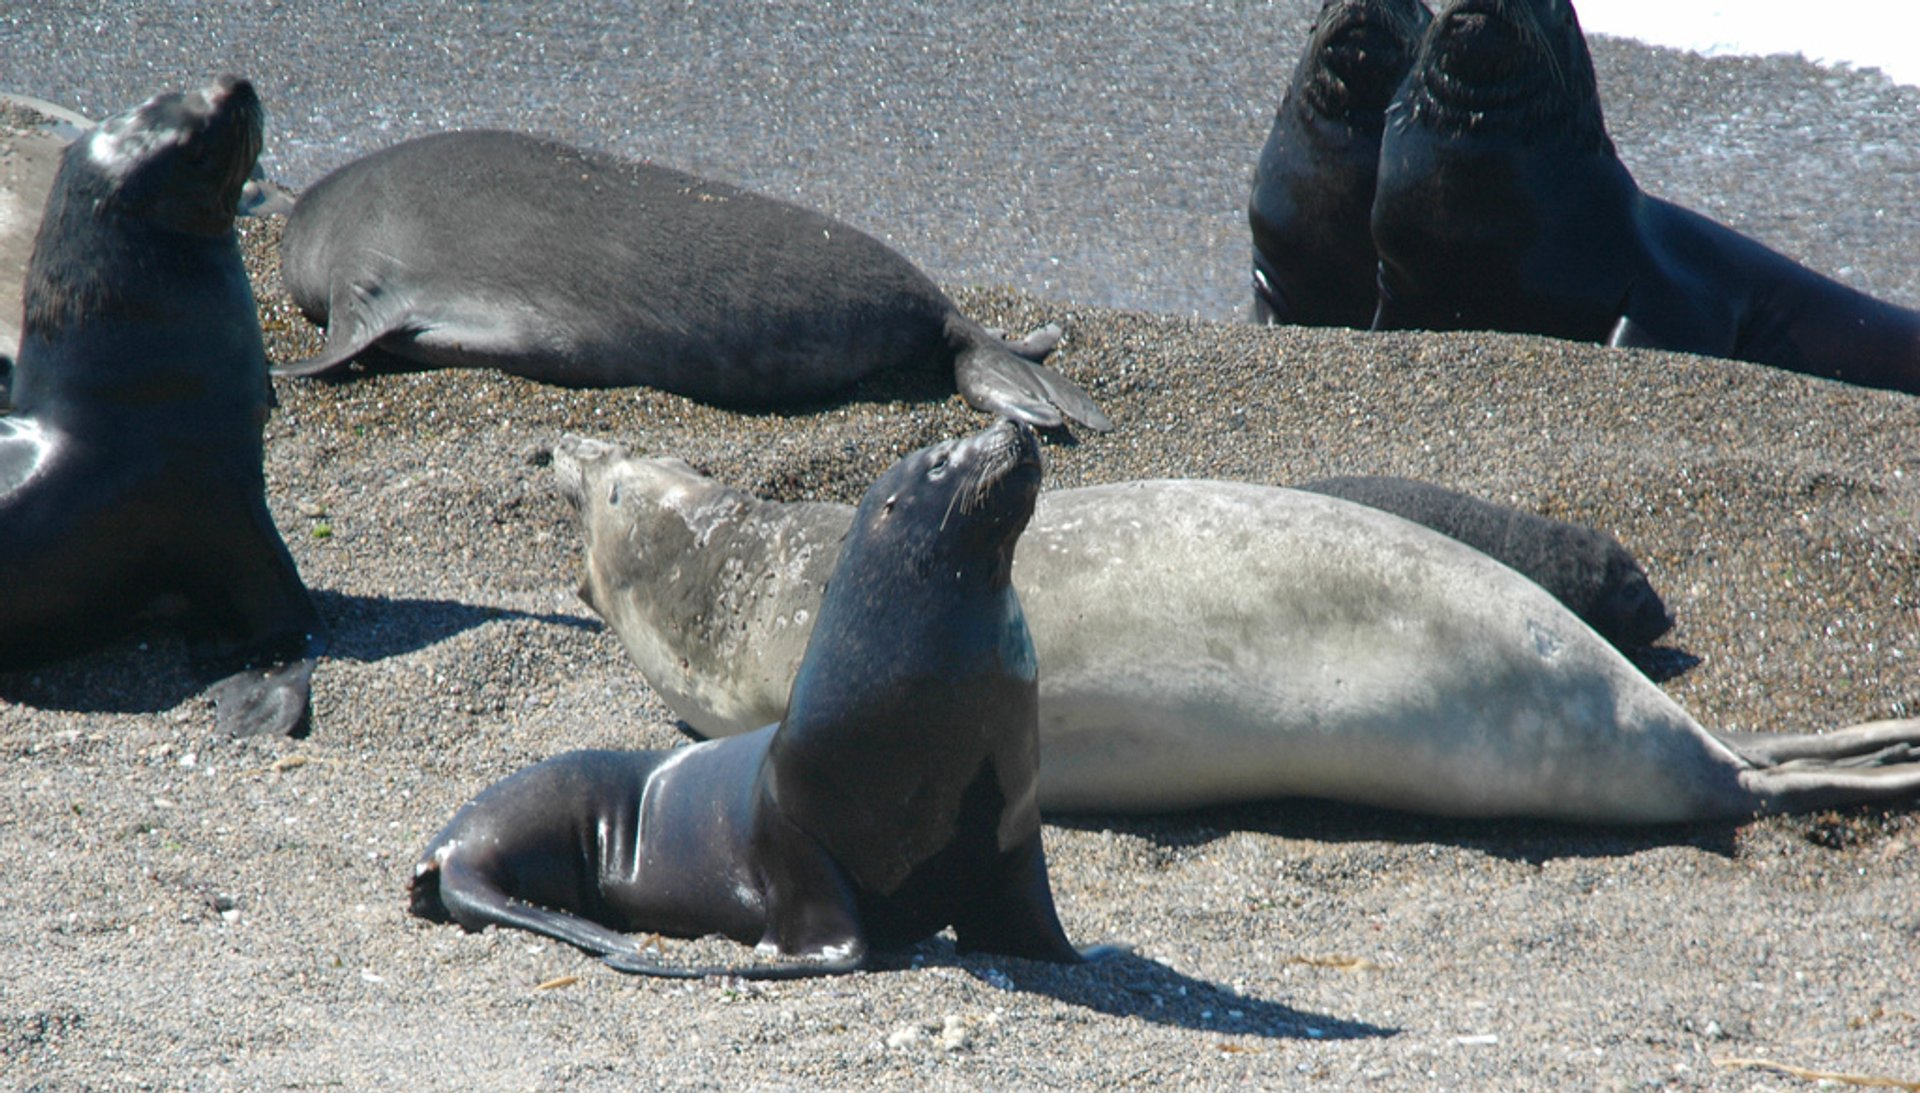 Southern Sea Lions (Otaria byronia) in the foreground and bacgrounds with Southern Elephant Seals and pups (Mirounga leonina) in the middle. 2019